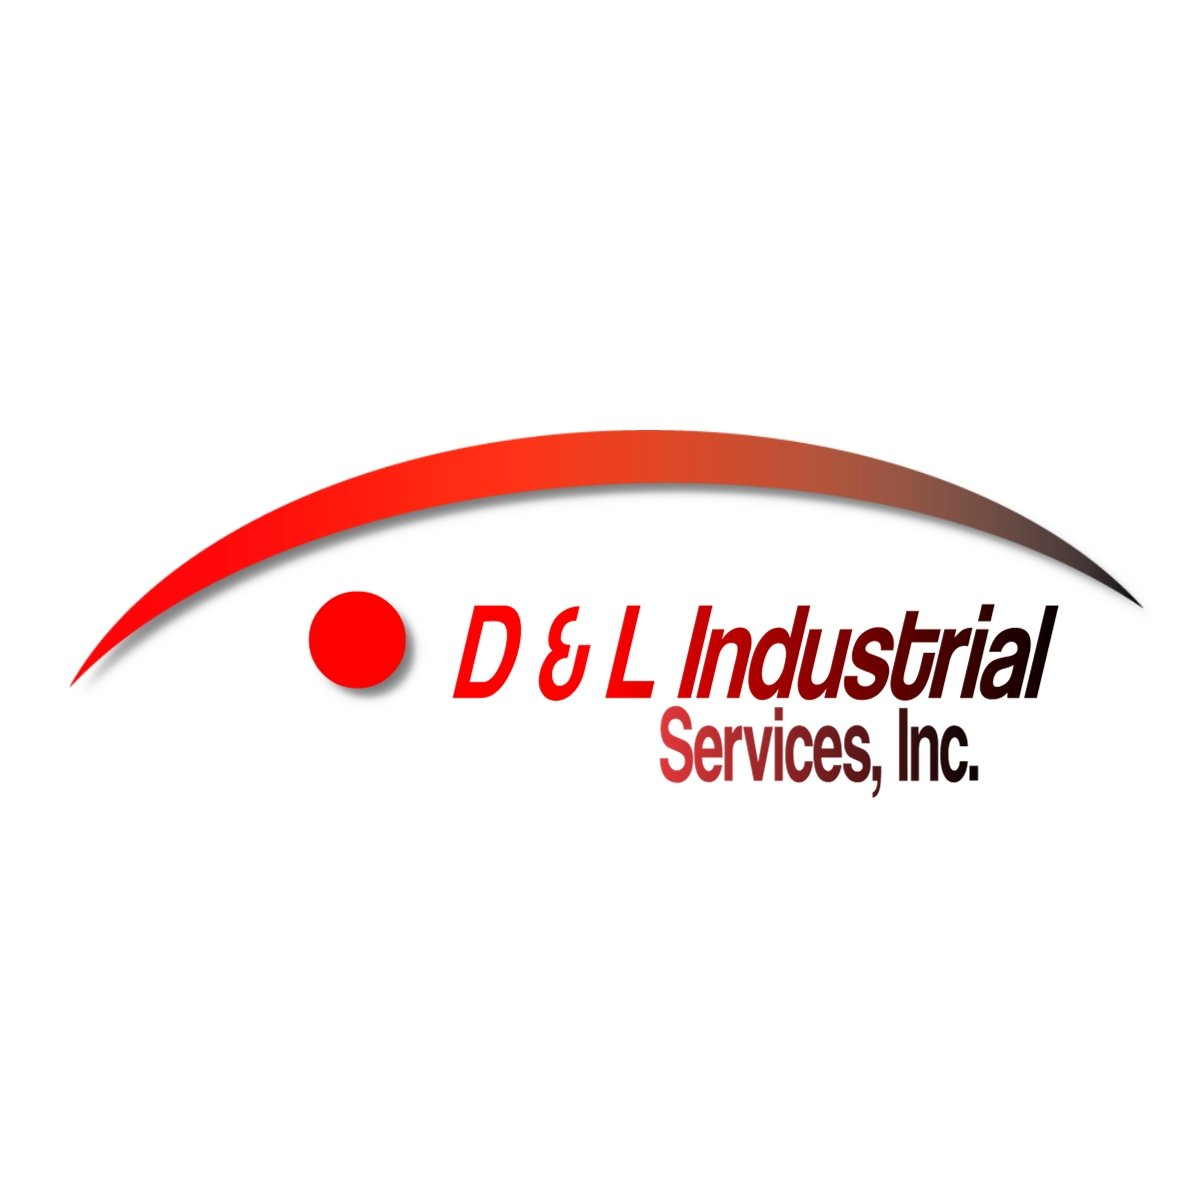 D & L Industrial Services